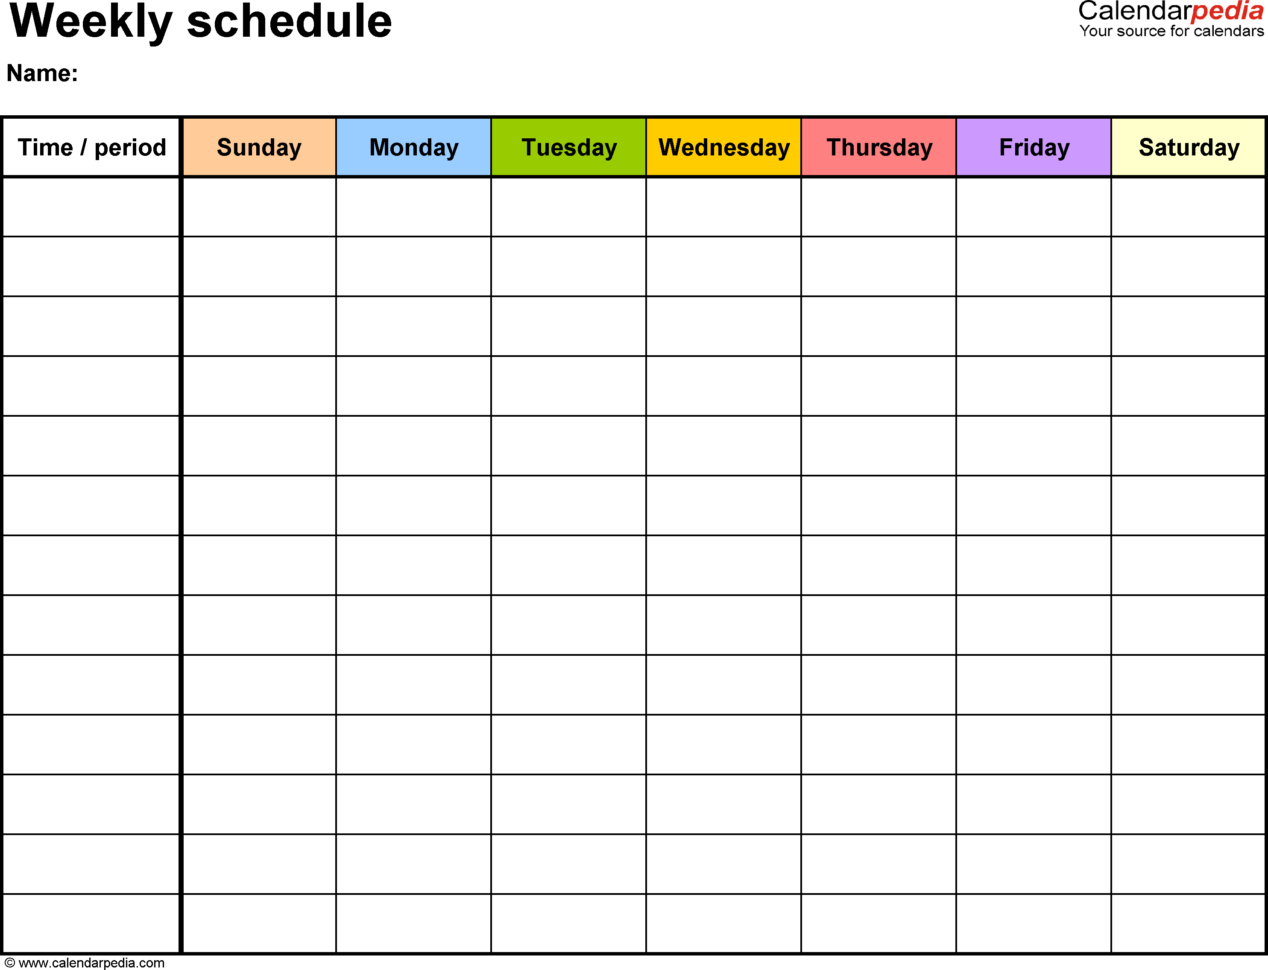 Free Weekly Schedule Templates For Excel   18 Templates Inside Learn Excel Spreadsheet